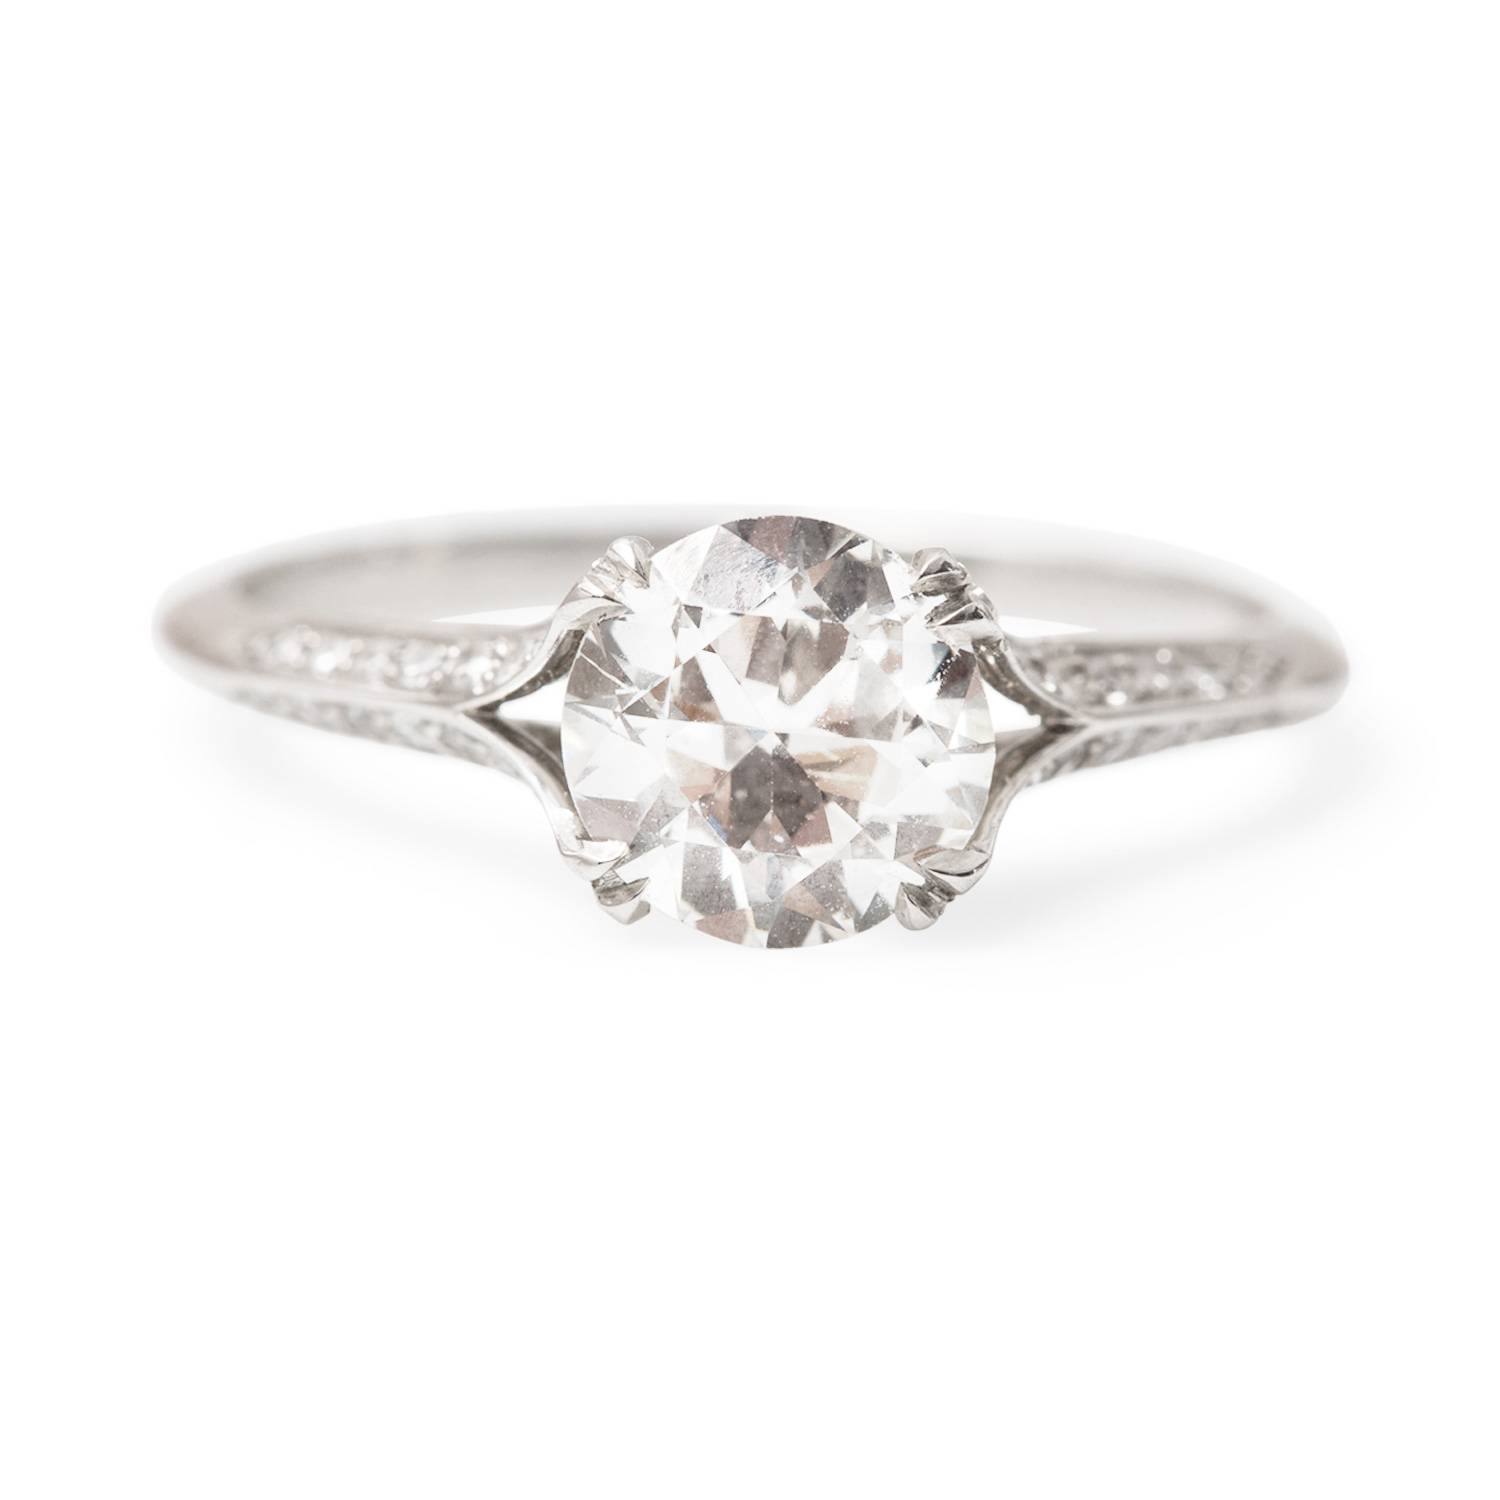 Engagement Rings – Wedding & Engagement – Catbird Pertaining To New Age Engagement Rings (View 7 of 15)